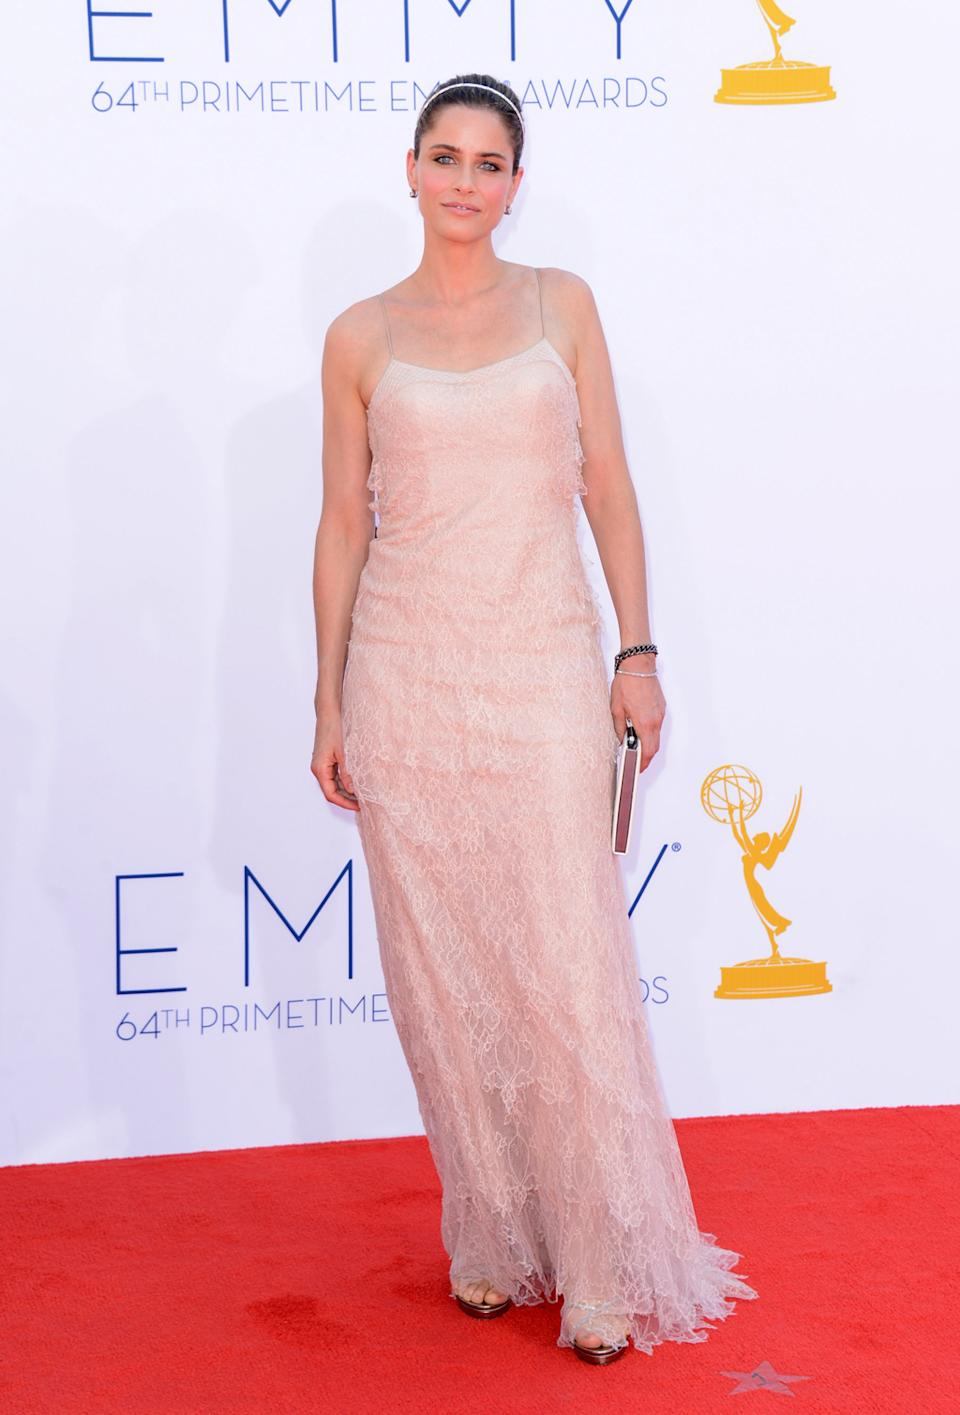 Actress Amanda Peet arrives at the 64th Primetime Emmy Awards at the Nokia Theatre in Los Angeles on September 23, 2012. (Photo by Jason Merritt/WireImage)